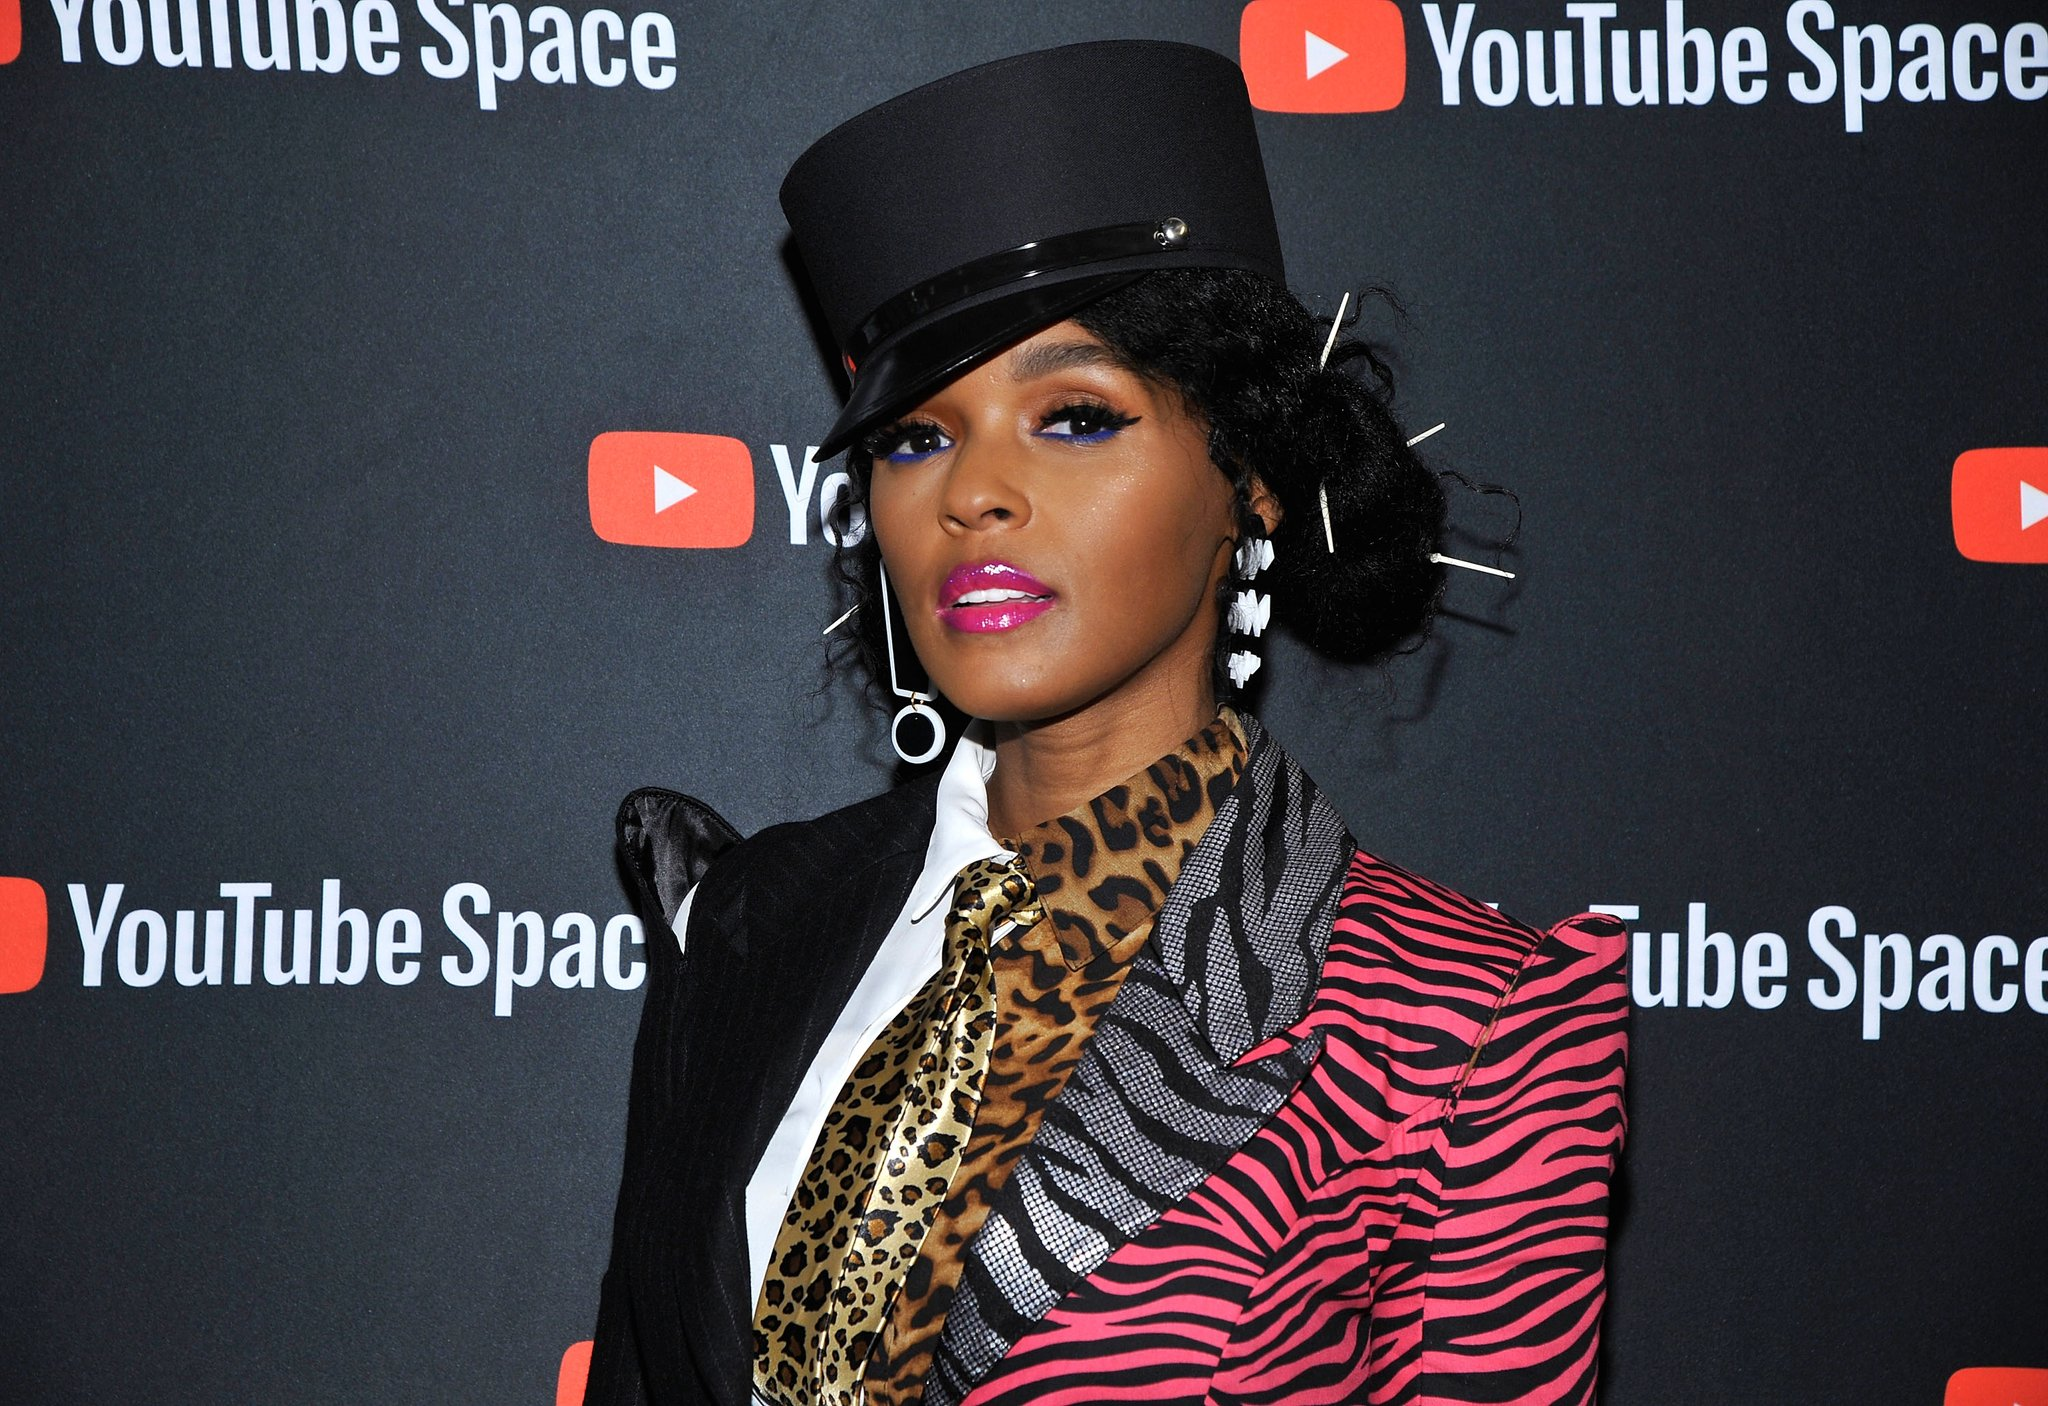 .@JanelleMonae launches app which replaces your playlists with her album. https://t.co/dBykBSuUhr https://t.co/urpvXpxuBt